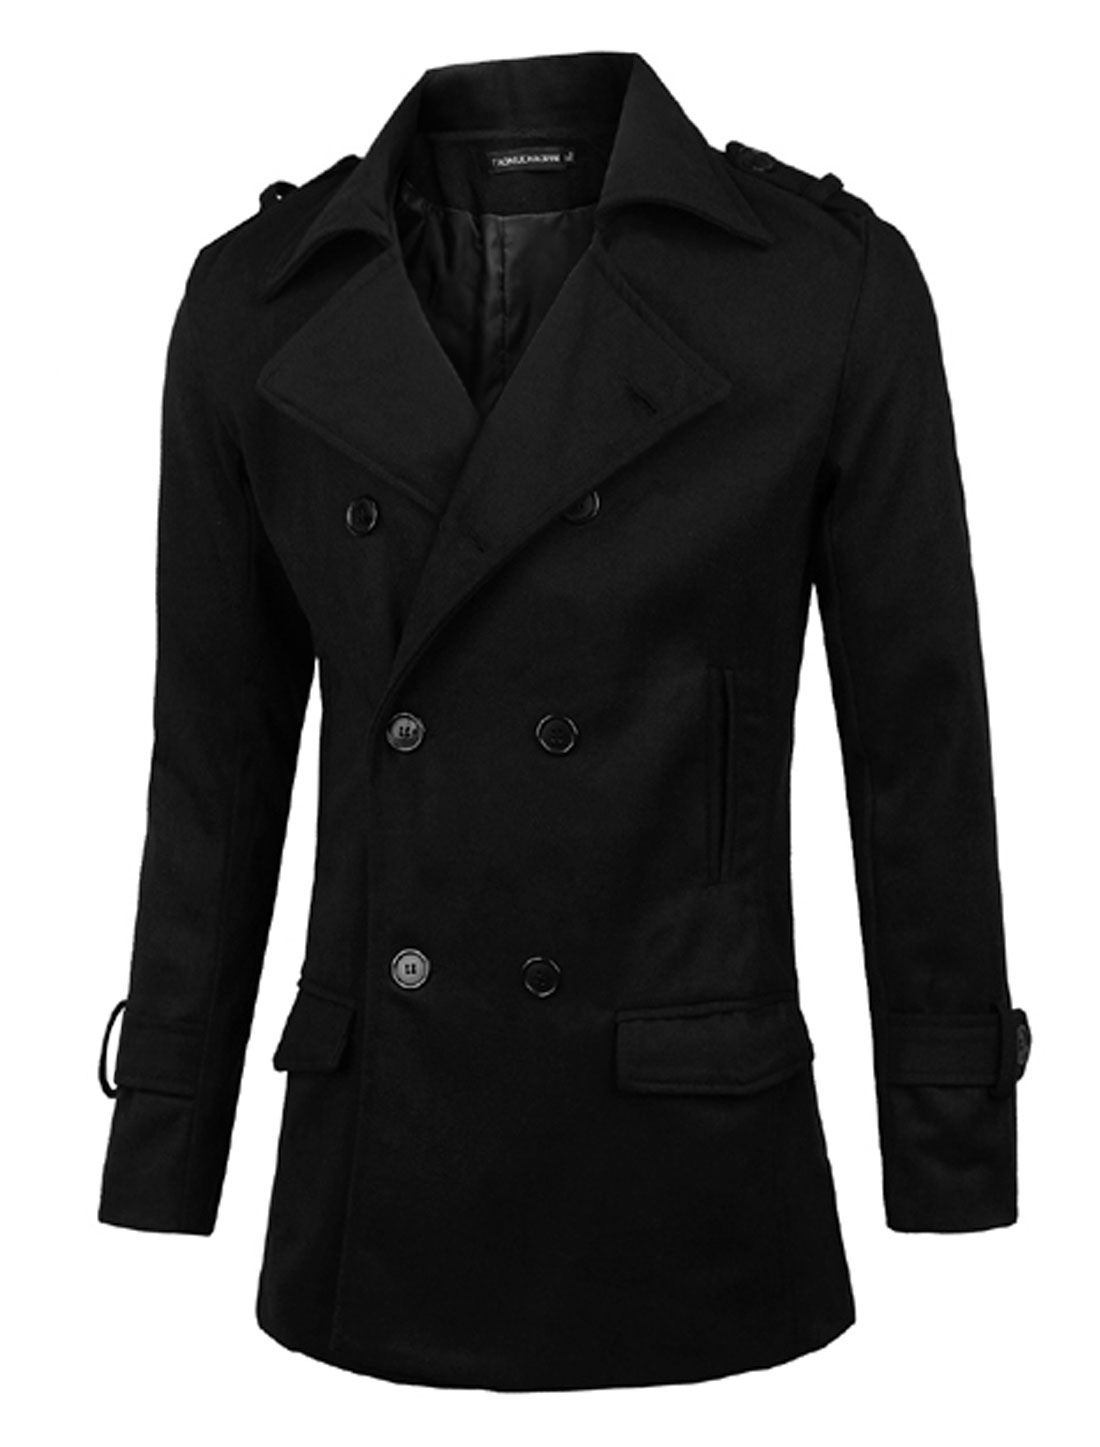 Men Convertible Collar Button Closed Trench Worsted Coat Black S